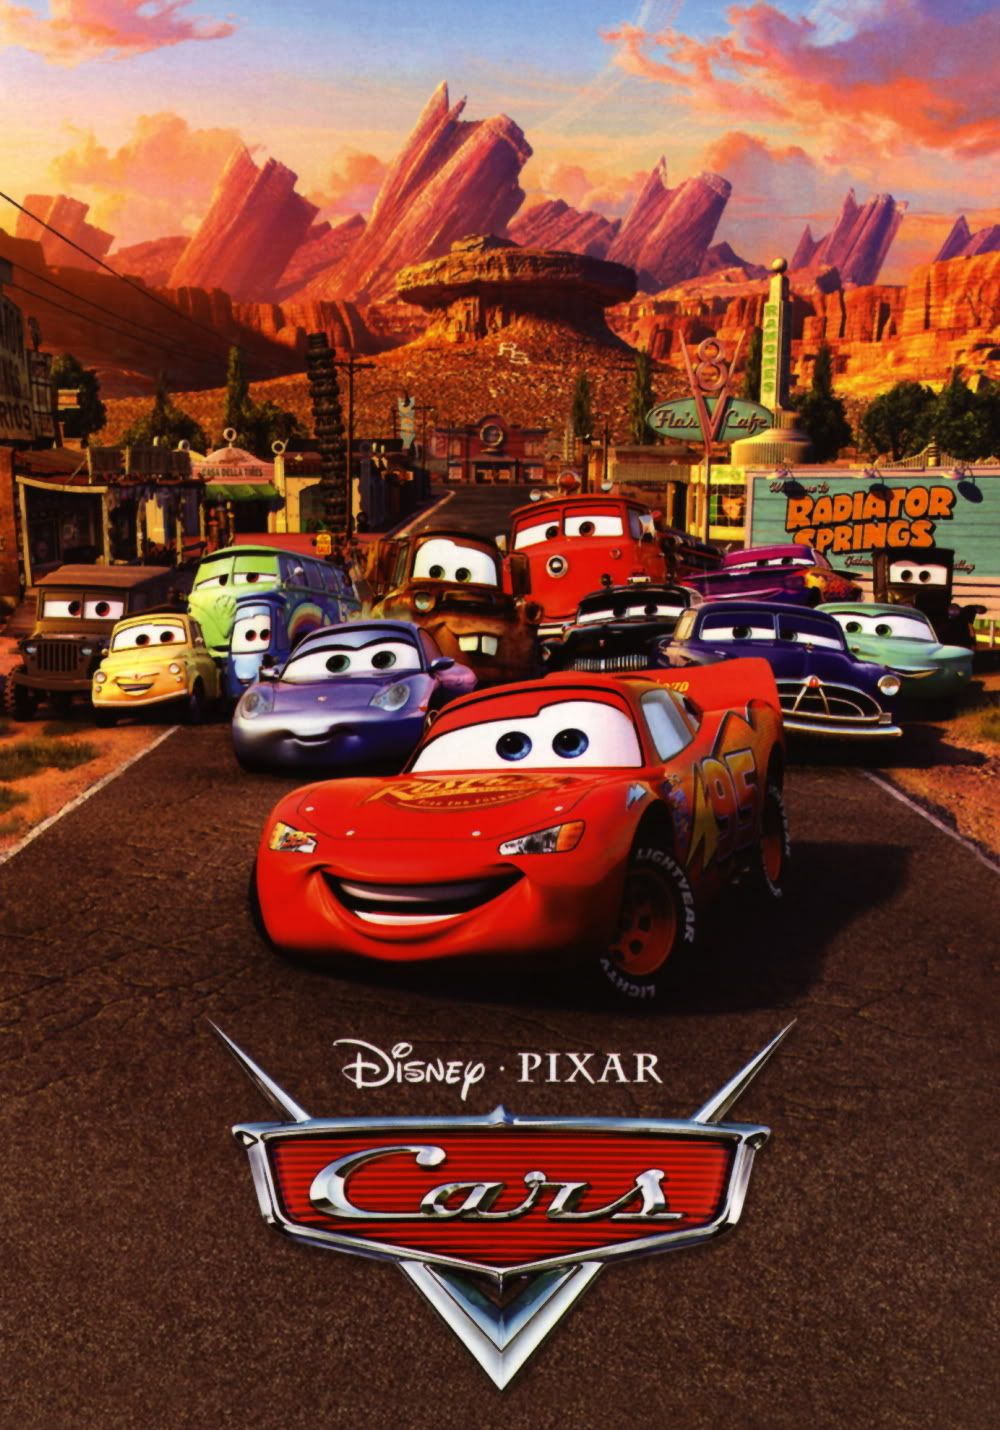 Cellphone Background / Wallpaper. Disney cars movie